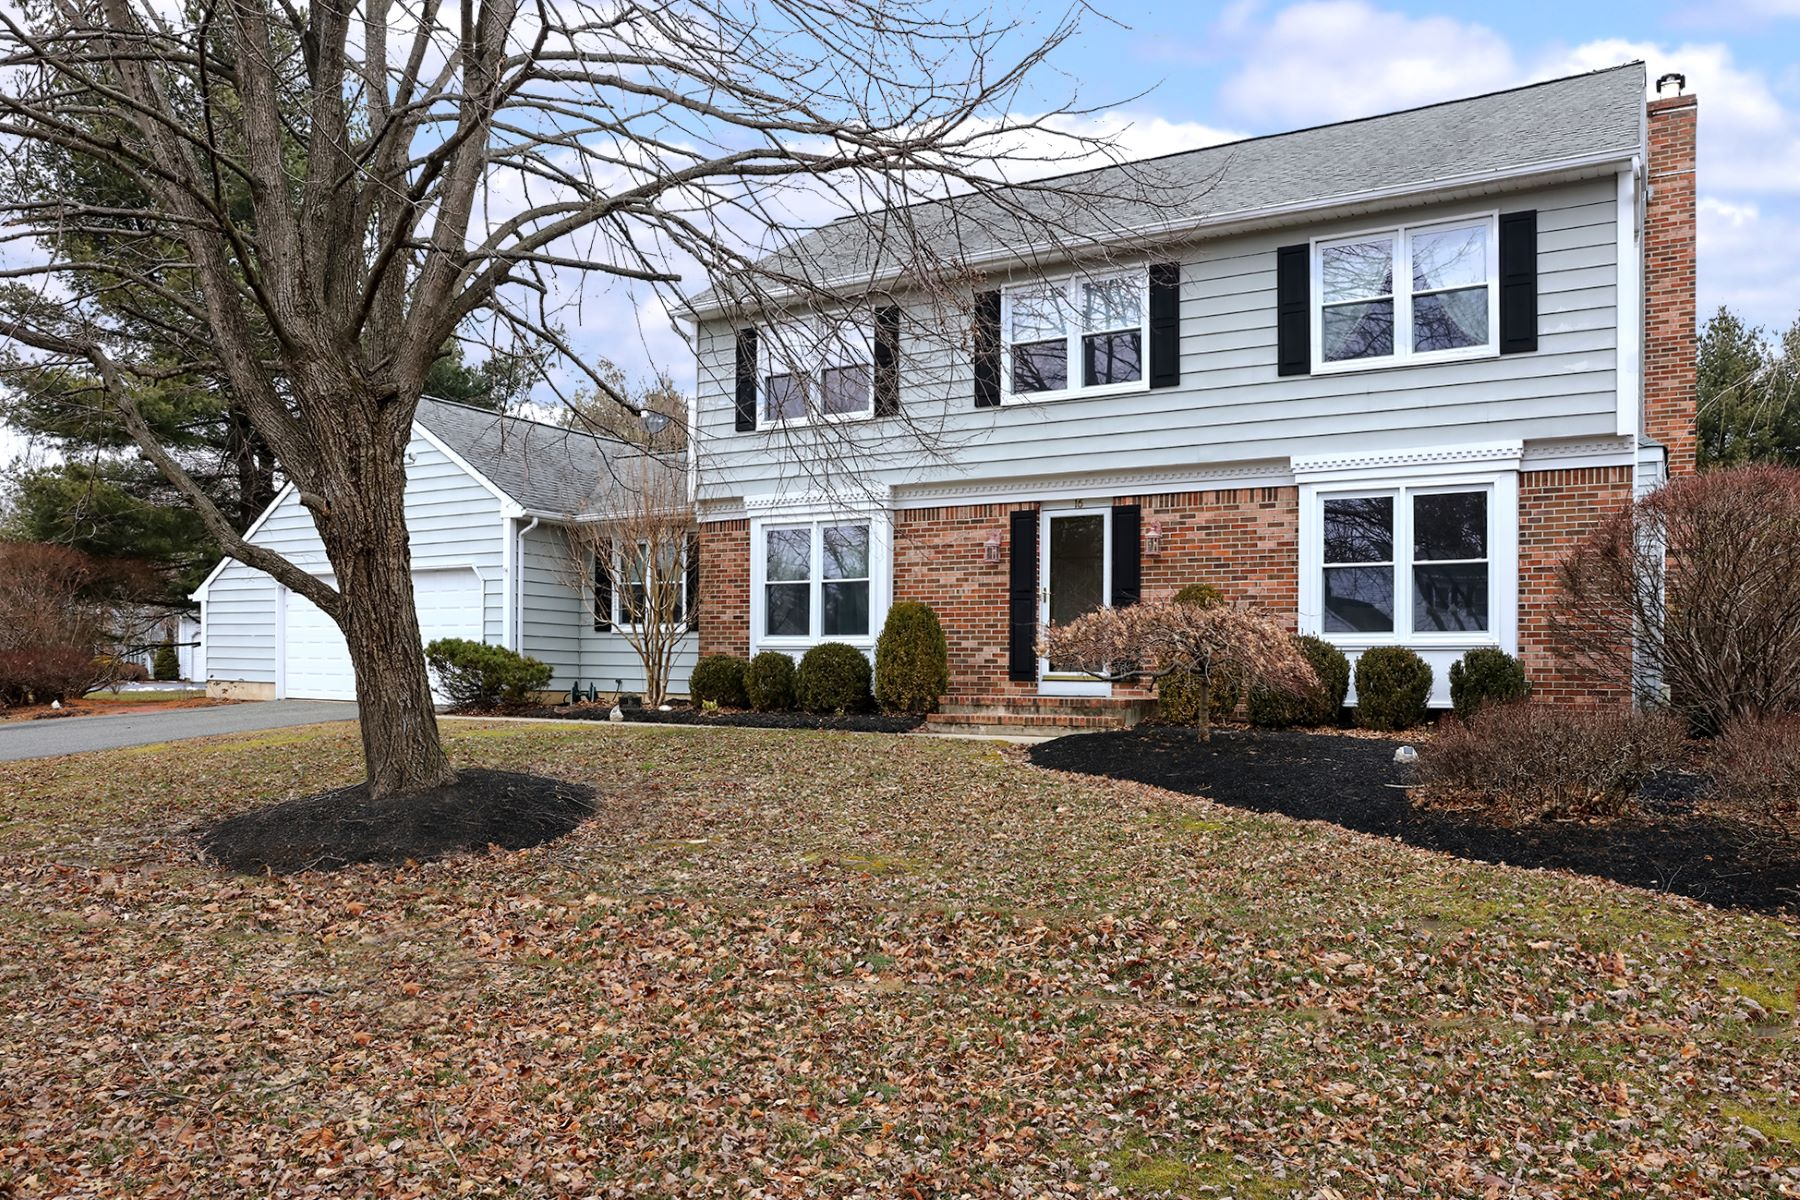 Single Family Homes for Sale at Dutch Neck Colonial Is the Definition of Home 16 Greenfield Drive South Princeton Junction, New Jersey 08550 United States